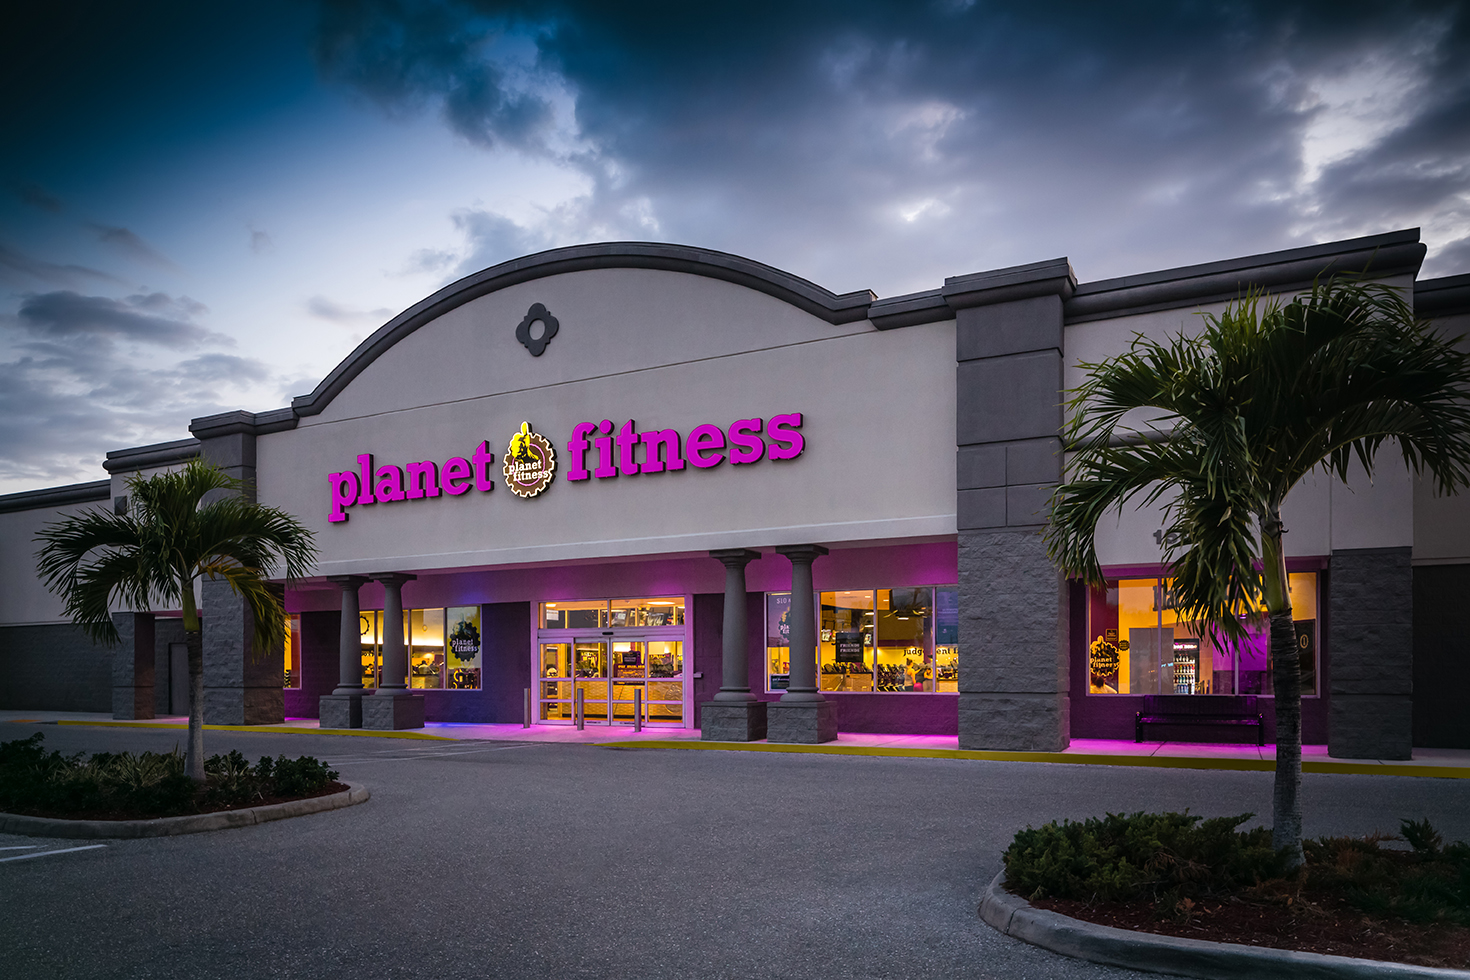 At Planet Fitness you can join with the PF Black Card® membership for just $19.99 a month, and it includes a lot of extras, like access to all 1,000+ Planet Fitness locations, the ability to bring a guest every day at no additional charge, spacious locker rooms, unlimited fitness training, the use of massage chairs and beds, and many clubs are open and staffed 24/7.